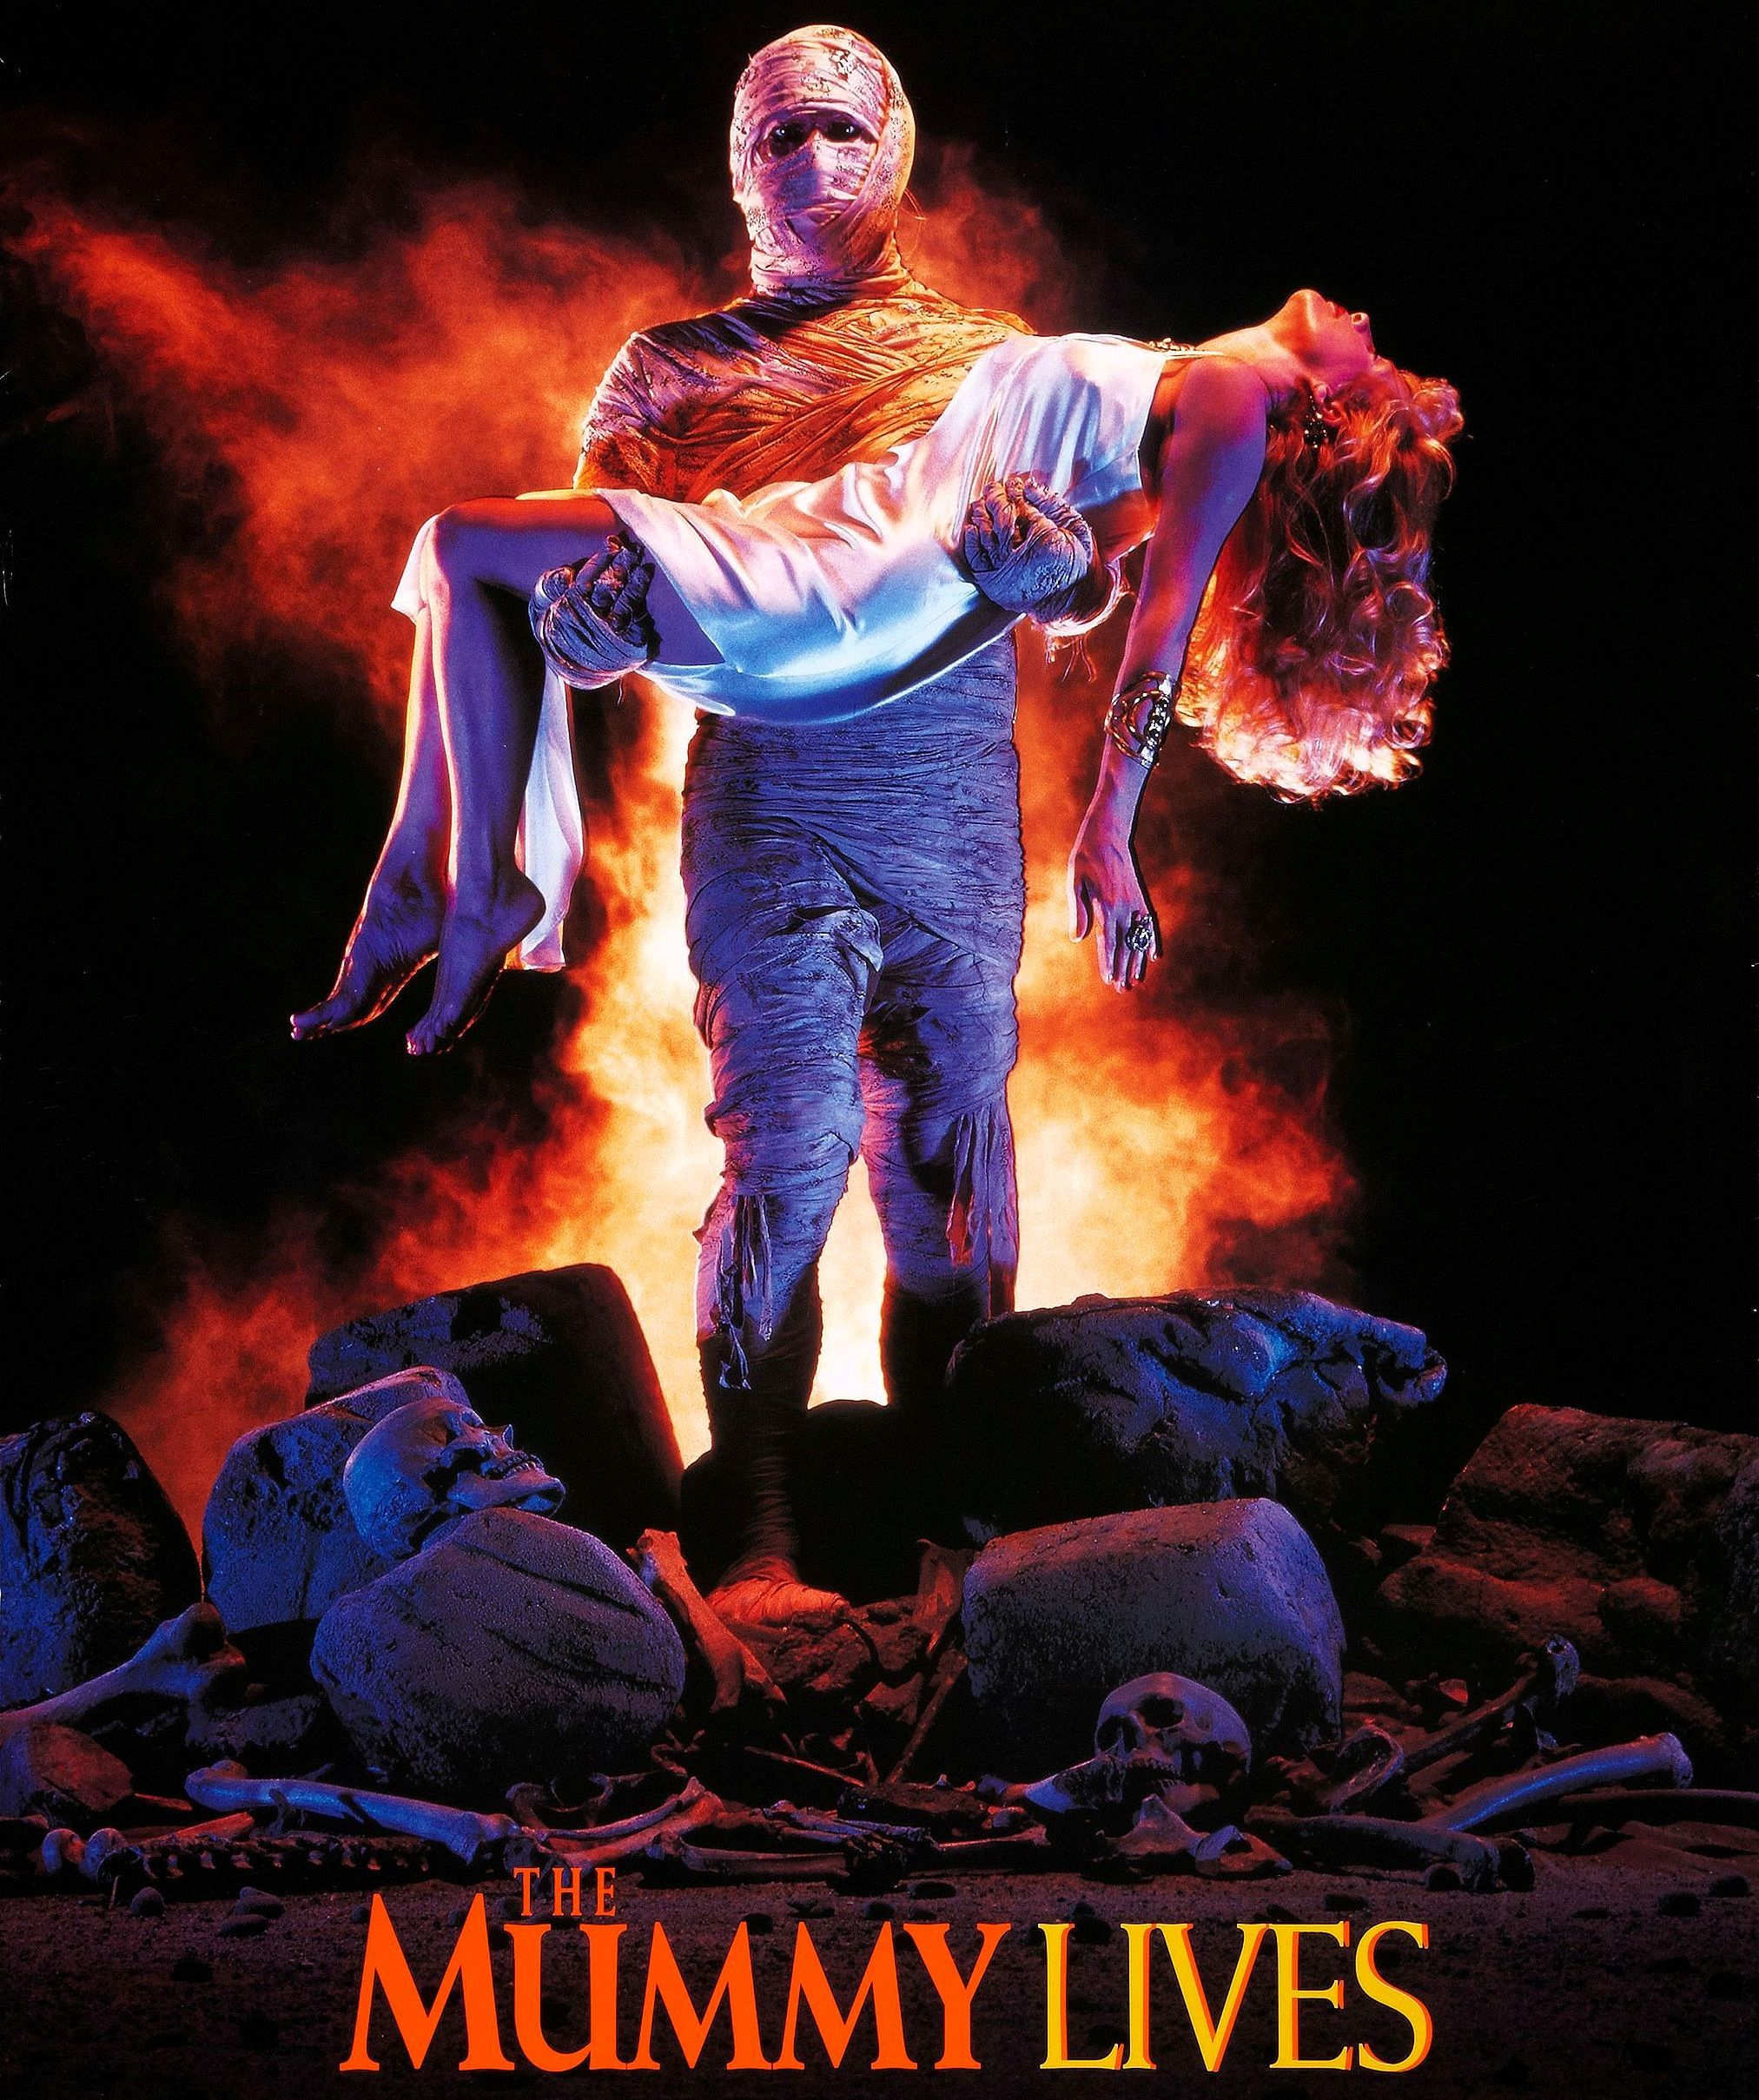 mummy_lives_poster_01_1.jpg